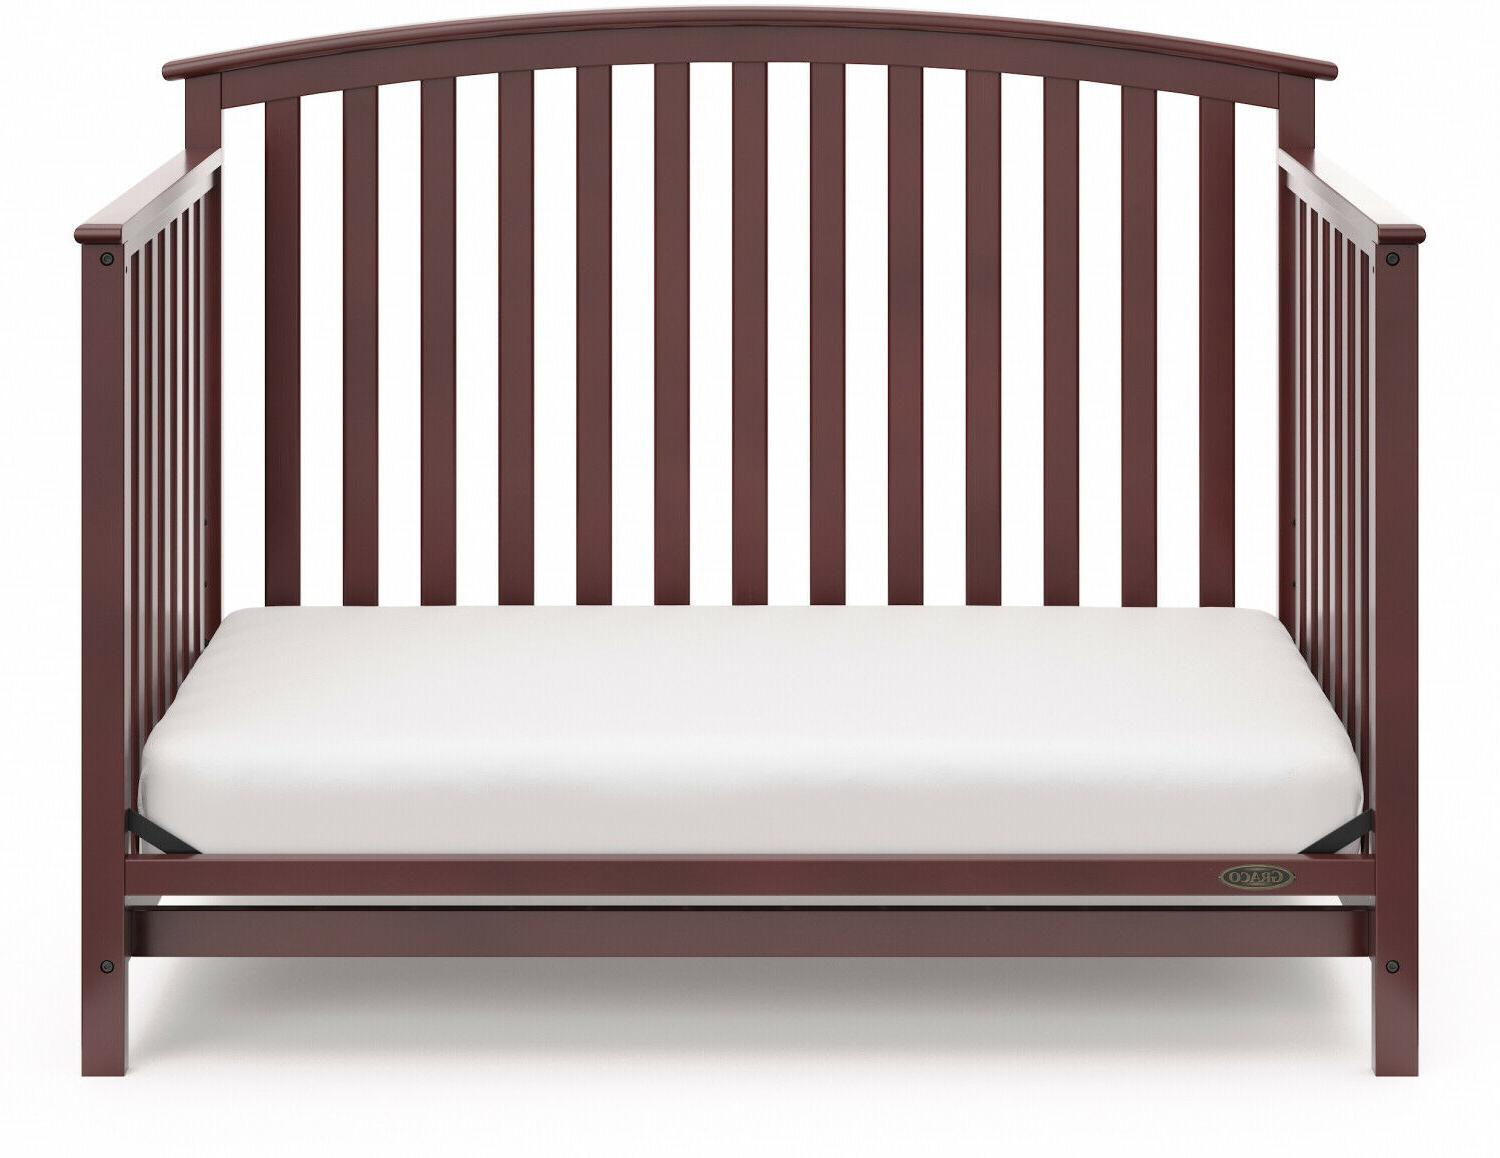 4 Wooden Crib Bed and Bedroom